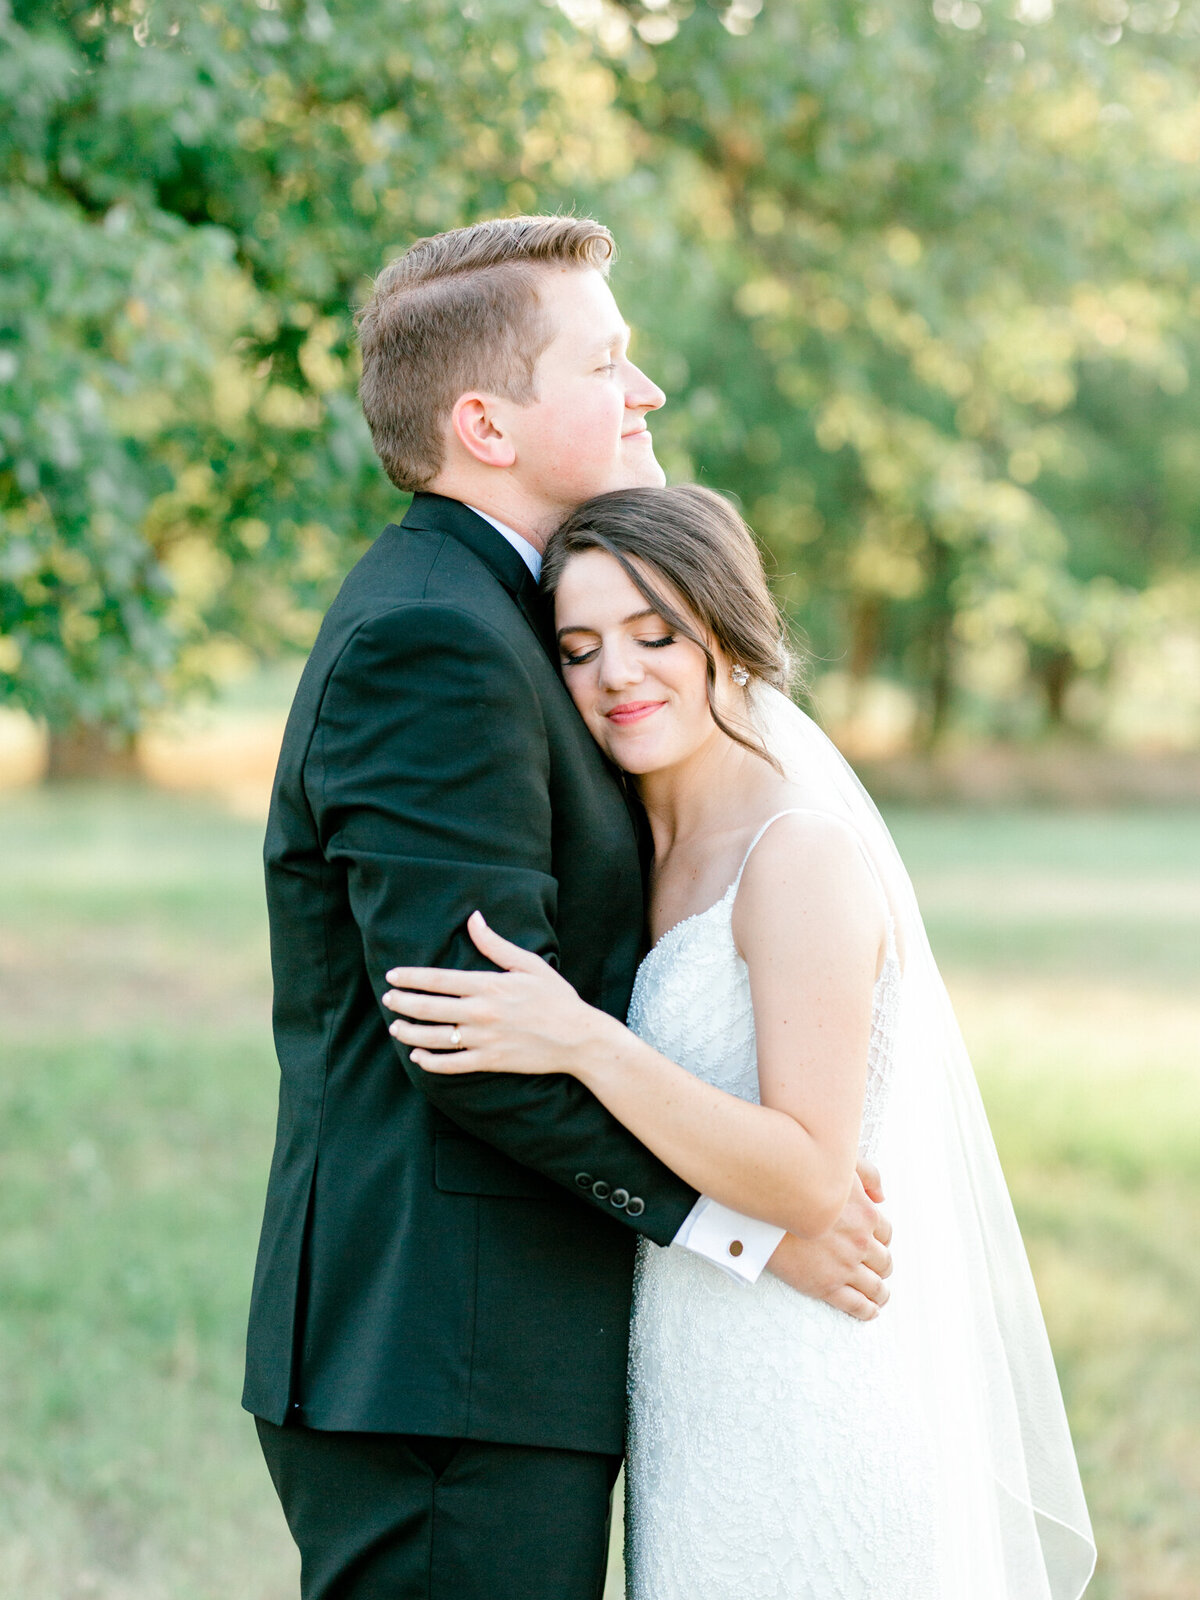 Anna & Billy's Wedding at The Nest at Ruth Farms | Dallas Wedding Photographer | Sami Kathryn Photography-12